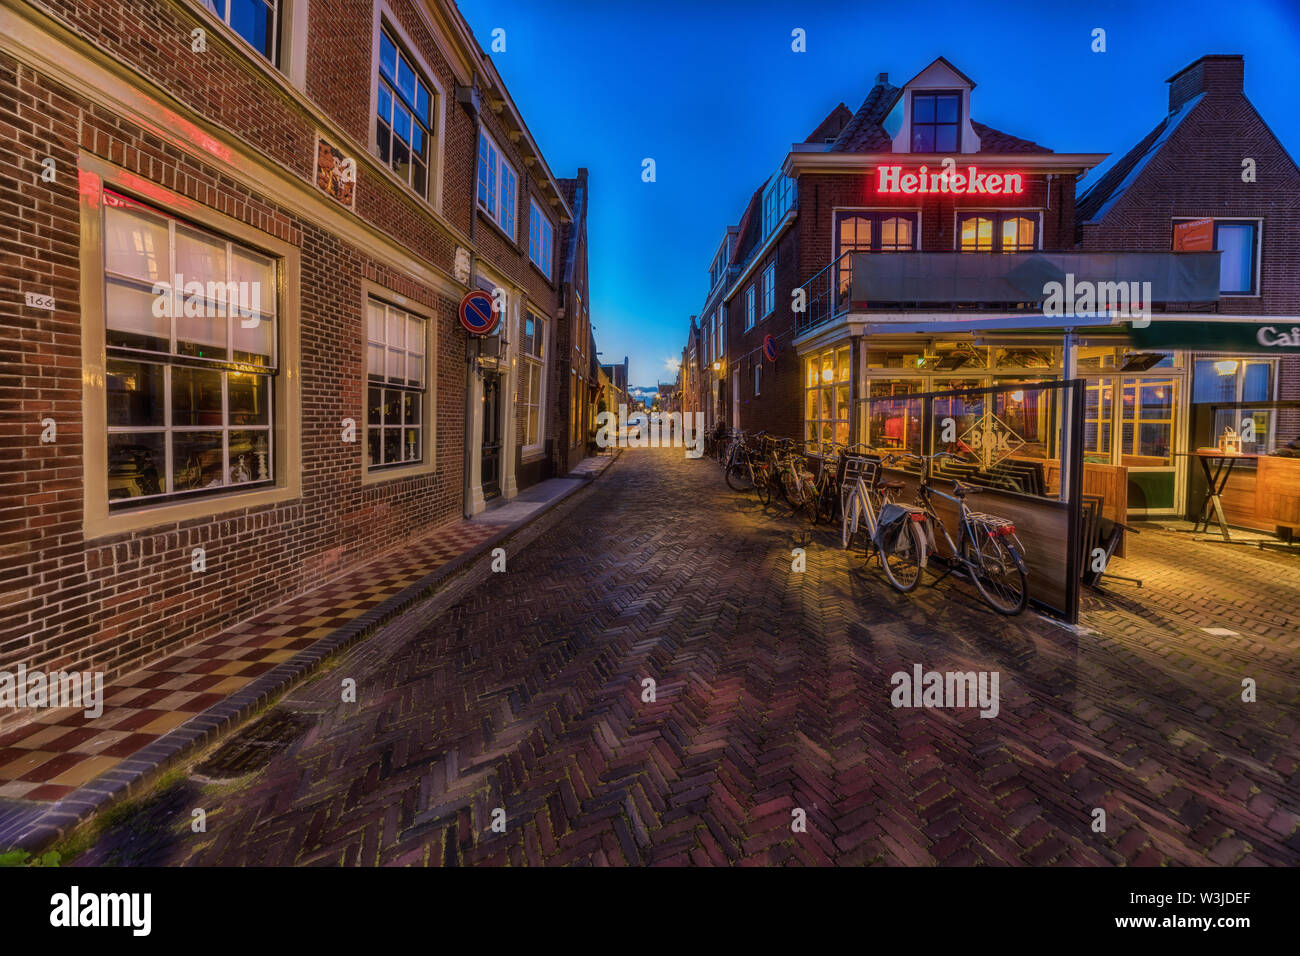 Enkhuizen, The Netherlands - May 04, 2019: Old street in Enkhuizen at the IJsselmeer in the Netherlands during dusk. - Stock Image